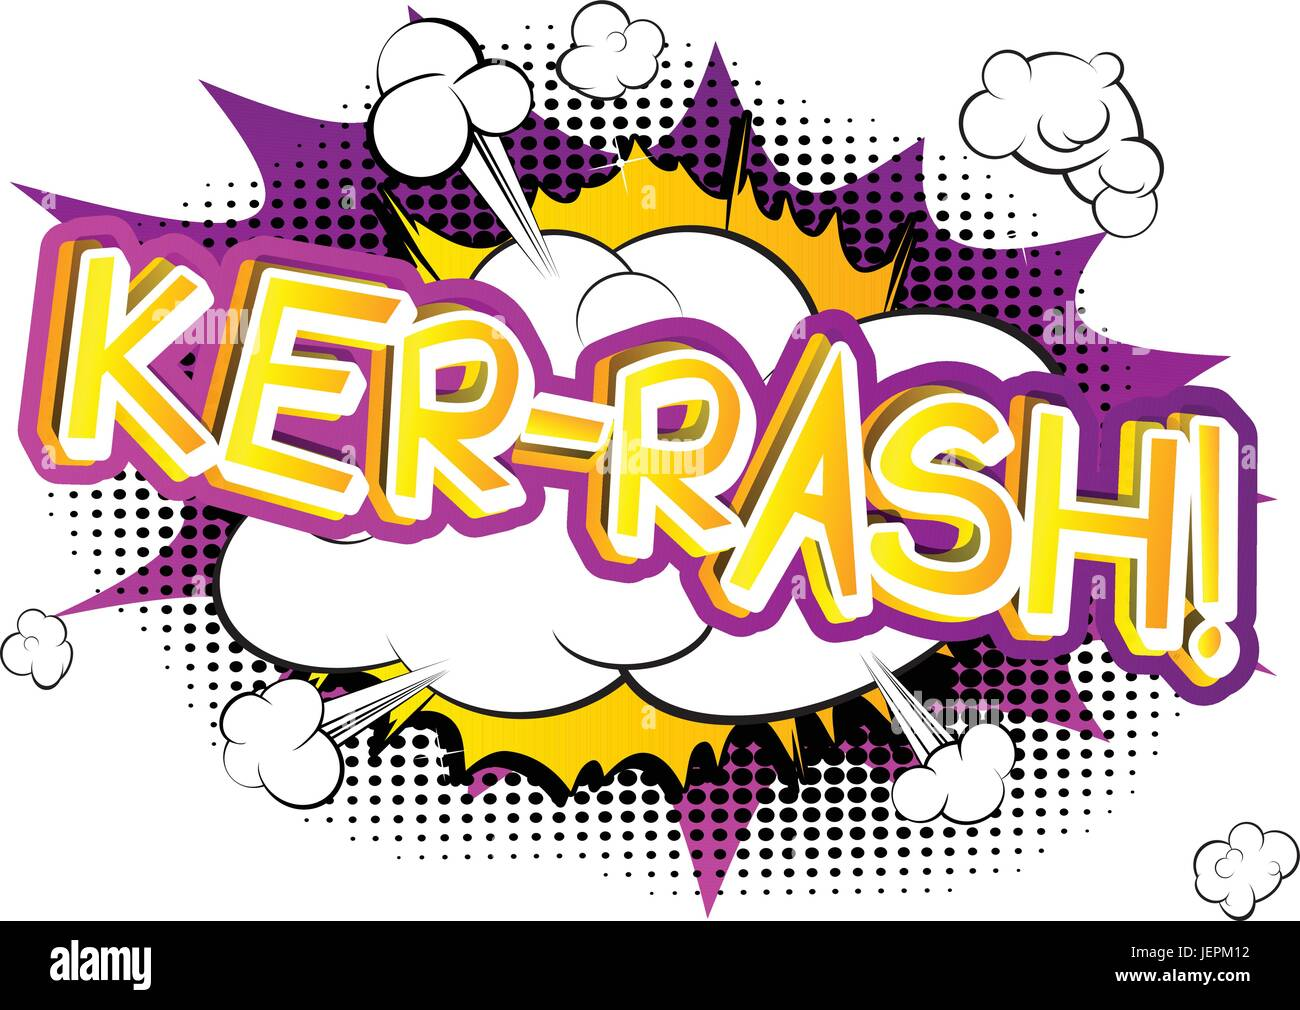 Ker-Rash! - Vector illustrated comic book style expression. - Stock Image